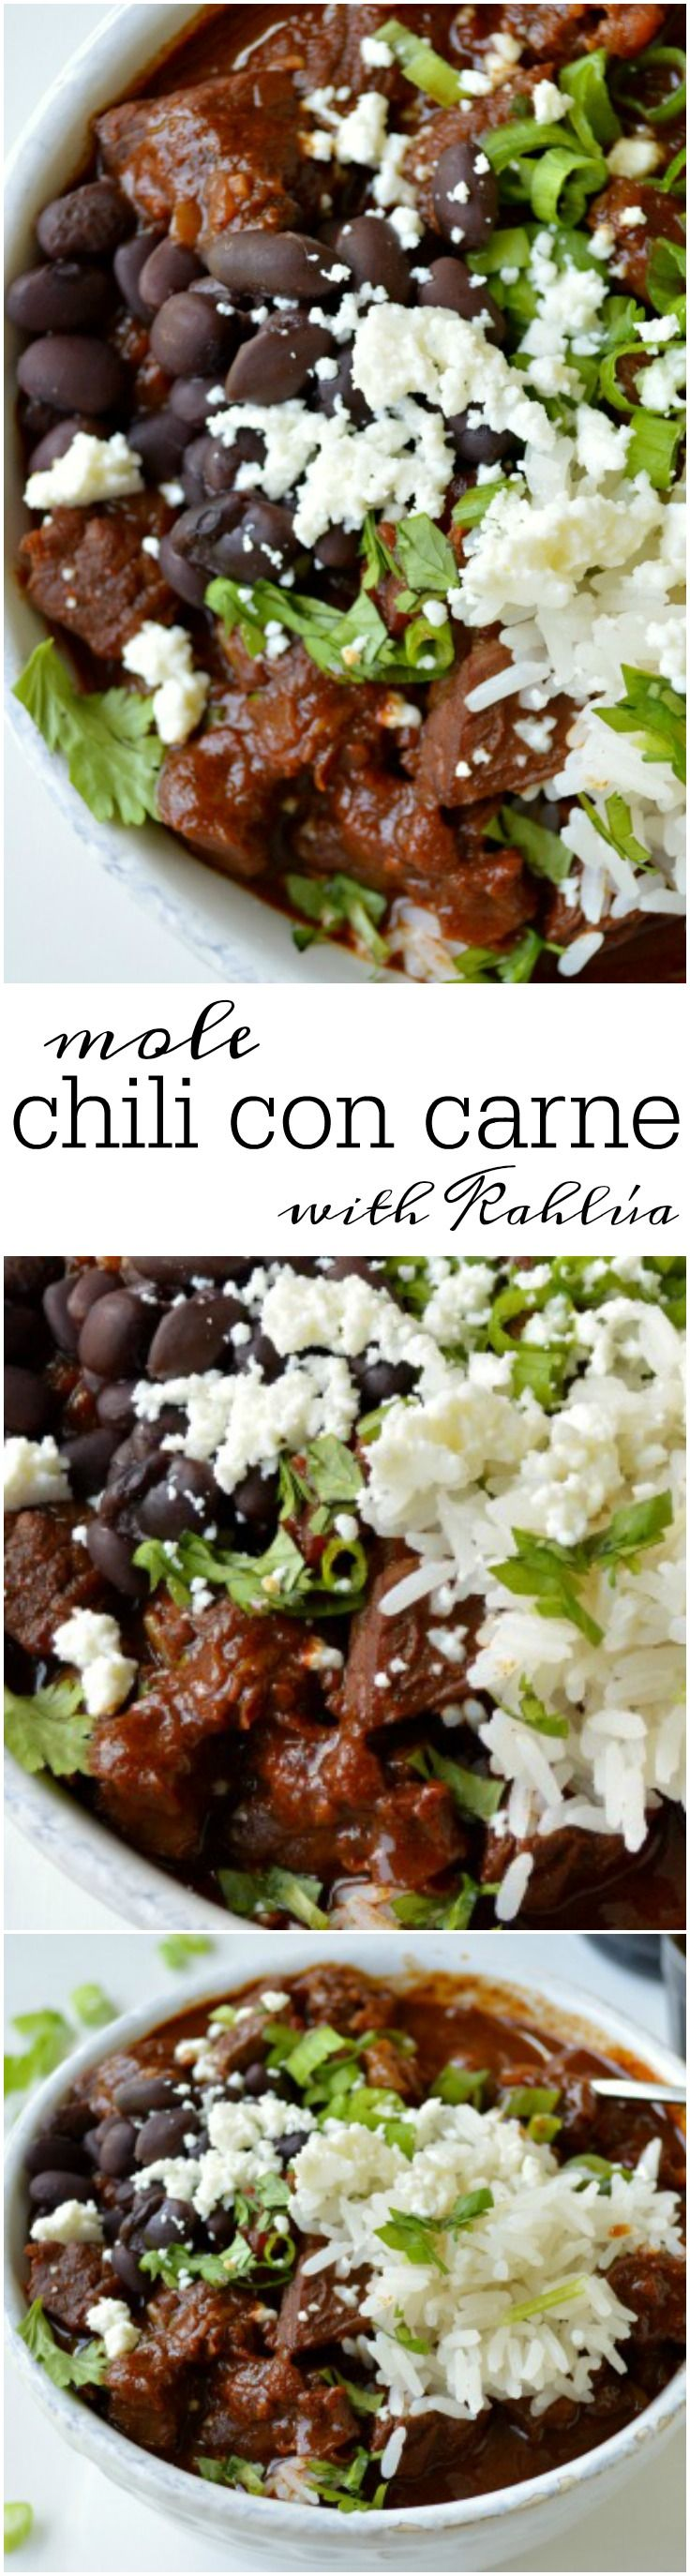 Tender beef, the perfect amount of spice, and a hint of dark chocolate make this Mole Chili con Carne THE BEST chili recipe!